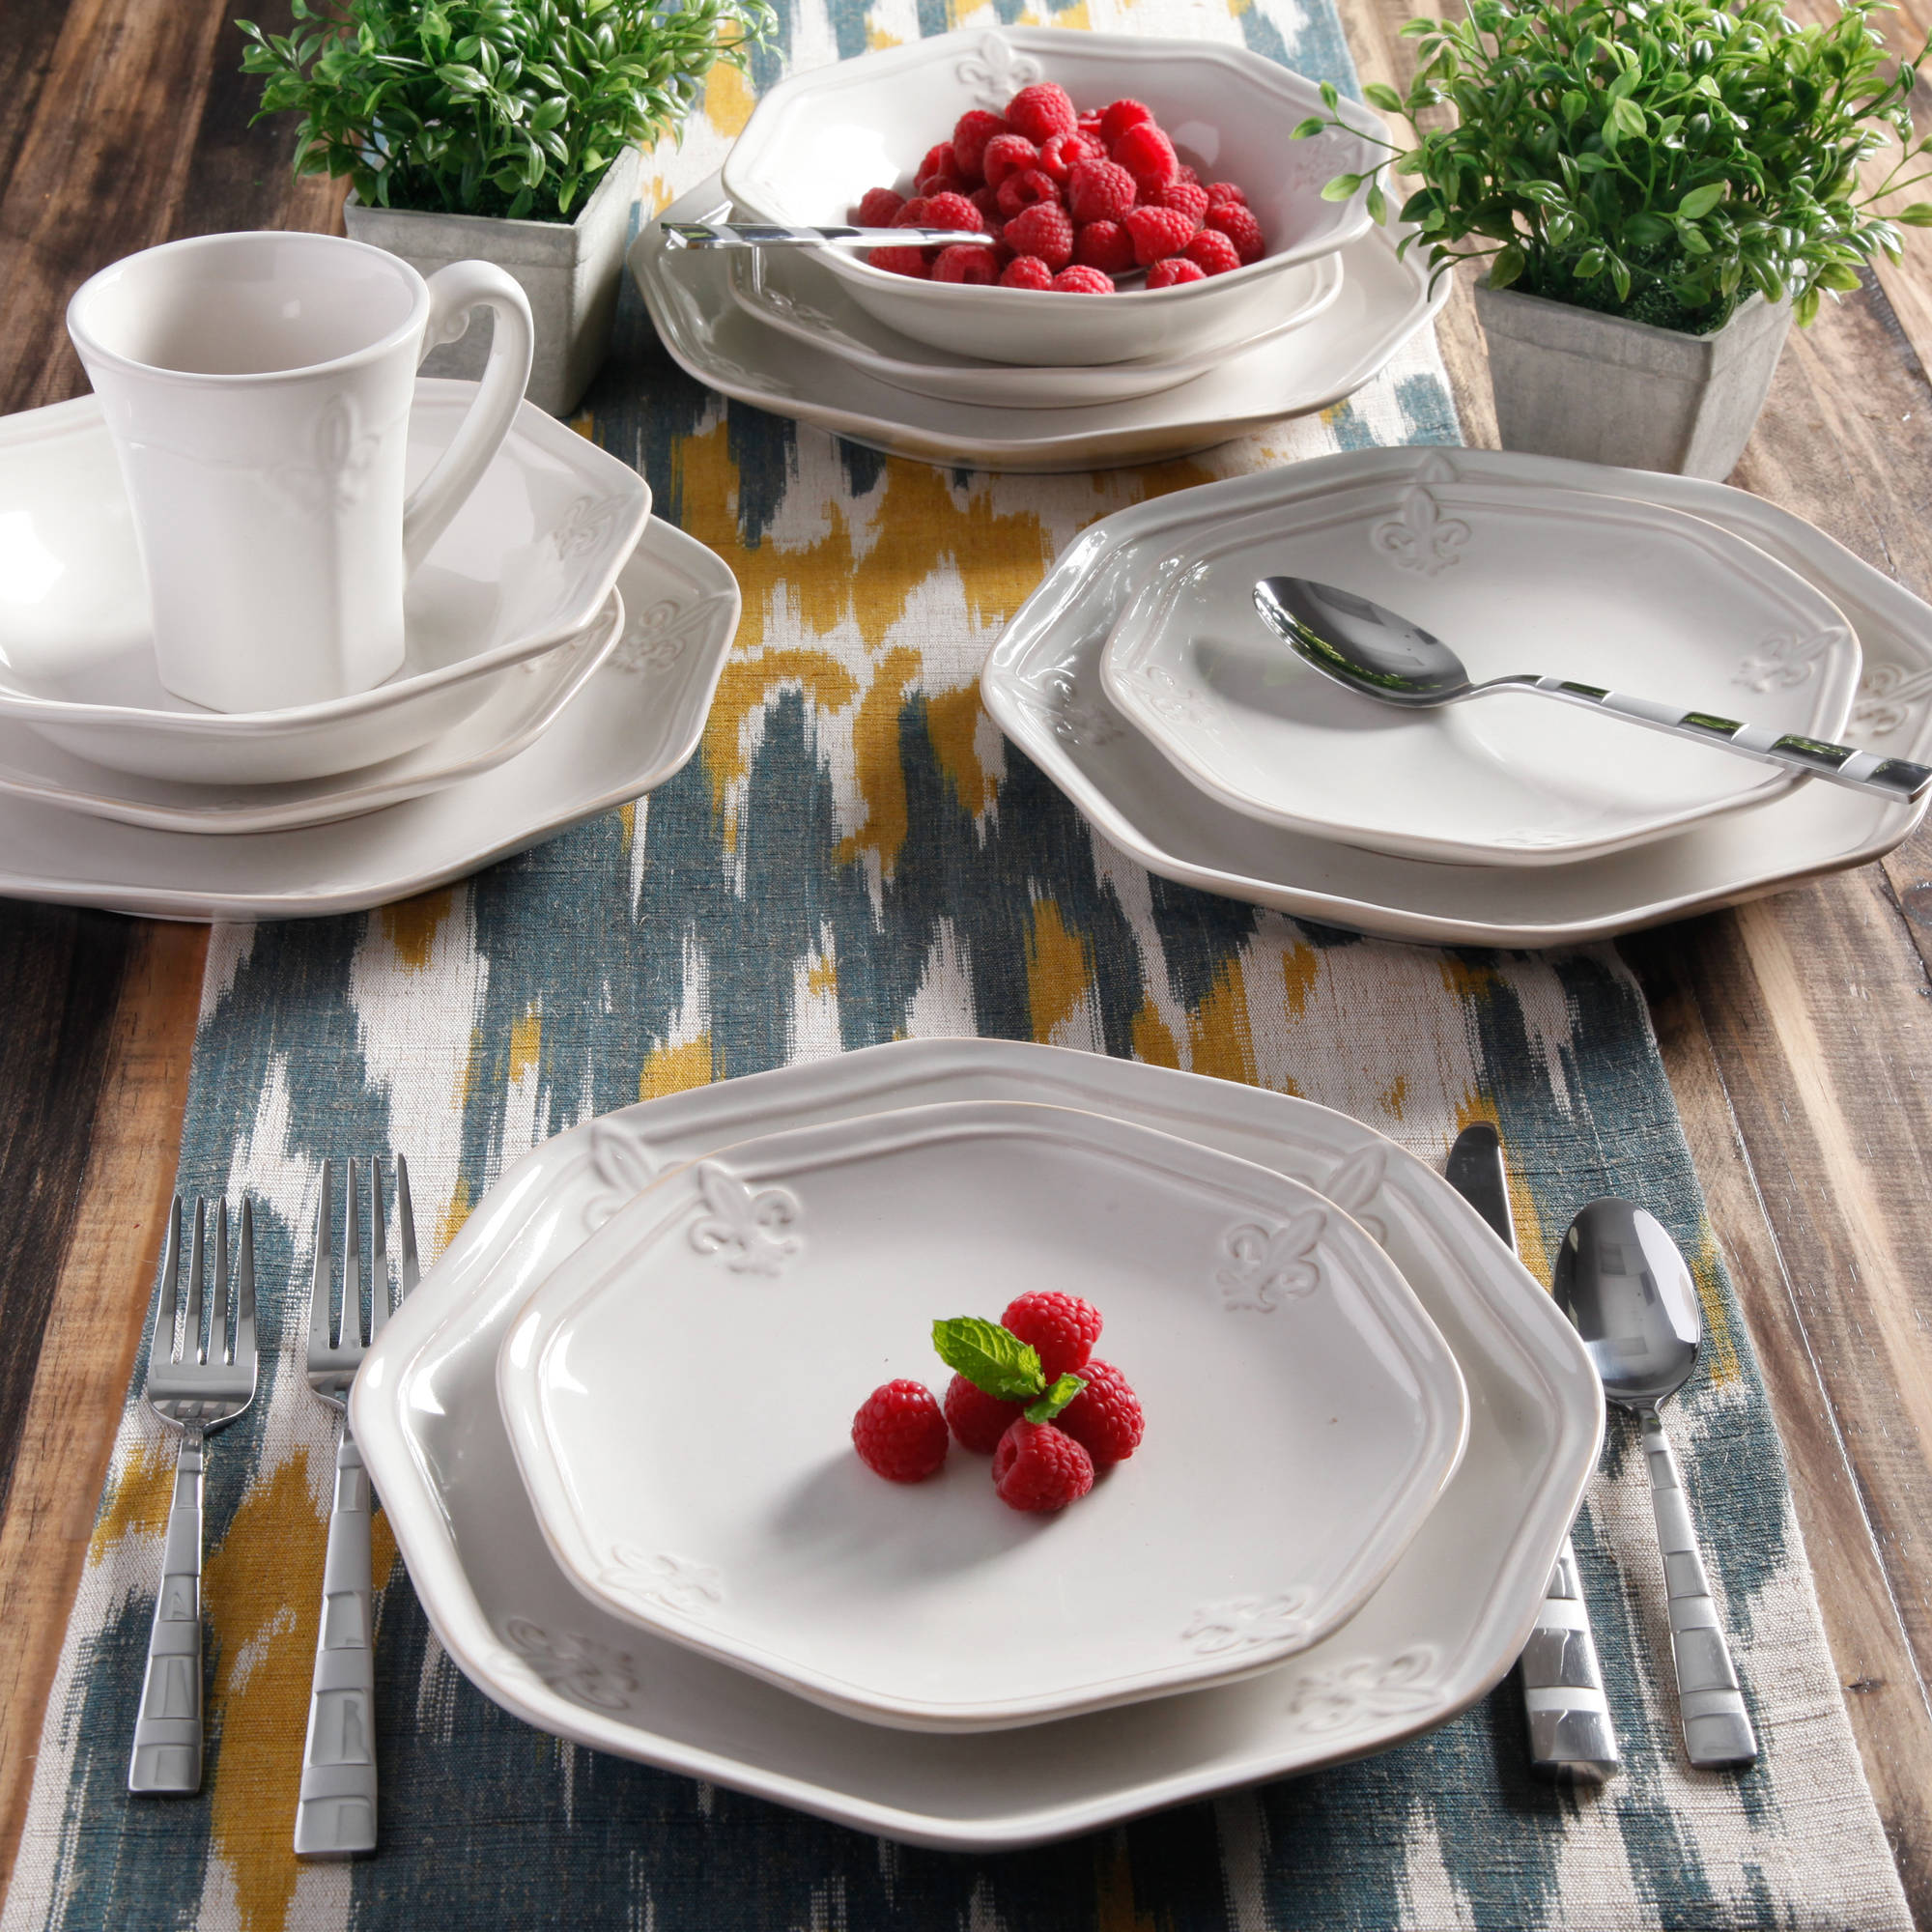 Better Homes \u0026 Gardens Country Crest 16-Piece Dinnerware Set - Walmart.com & Better Homes \u0026 Gardens Country Crest 16-Piece Dinnerware Set ...